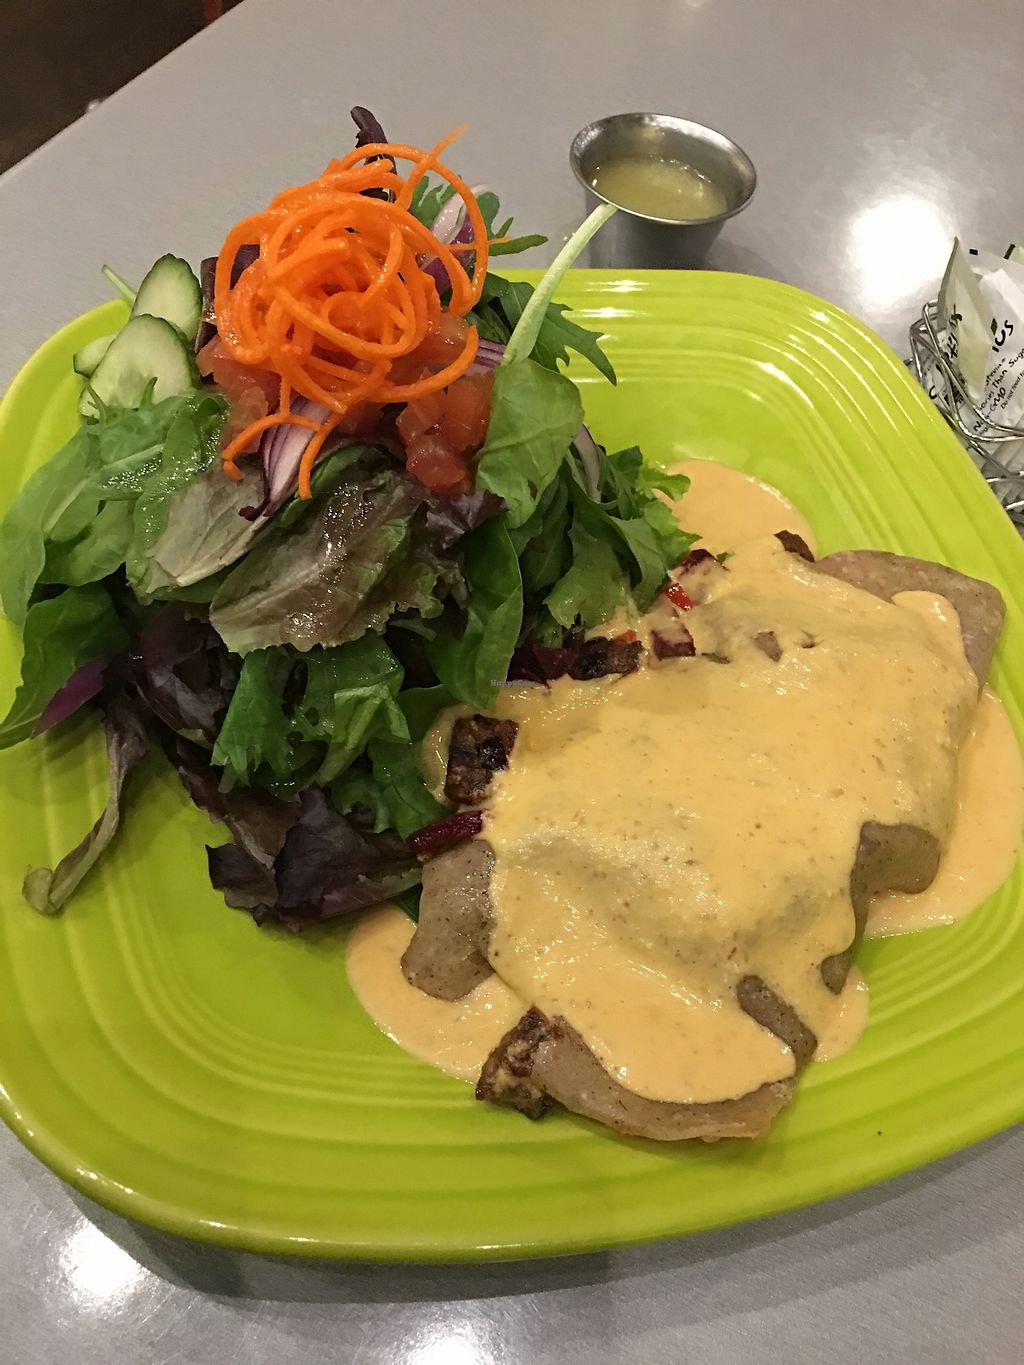 "Photo of Lotus Leaf Cafe  by <a href=""/members/profile/TEE427"">TEE427</a> <br/>Beet and black bean crepe it was Delicious!!! <br/> December 21, 2017  - <a href='/contact/abuse/image/27044/337665'>Report</a>"